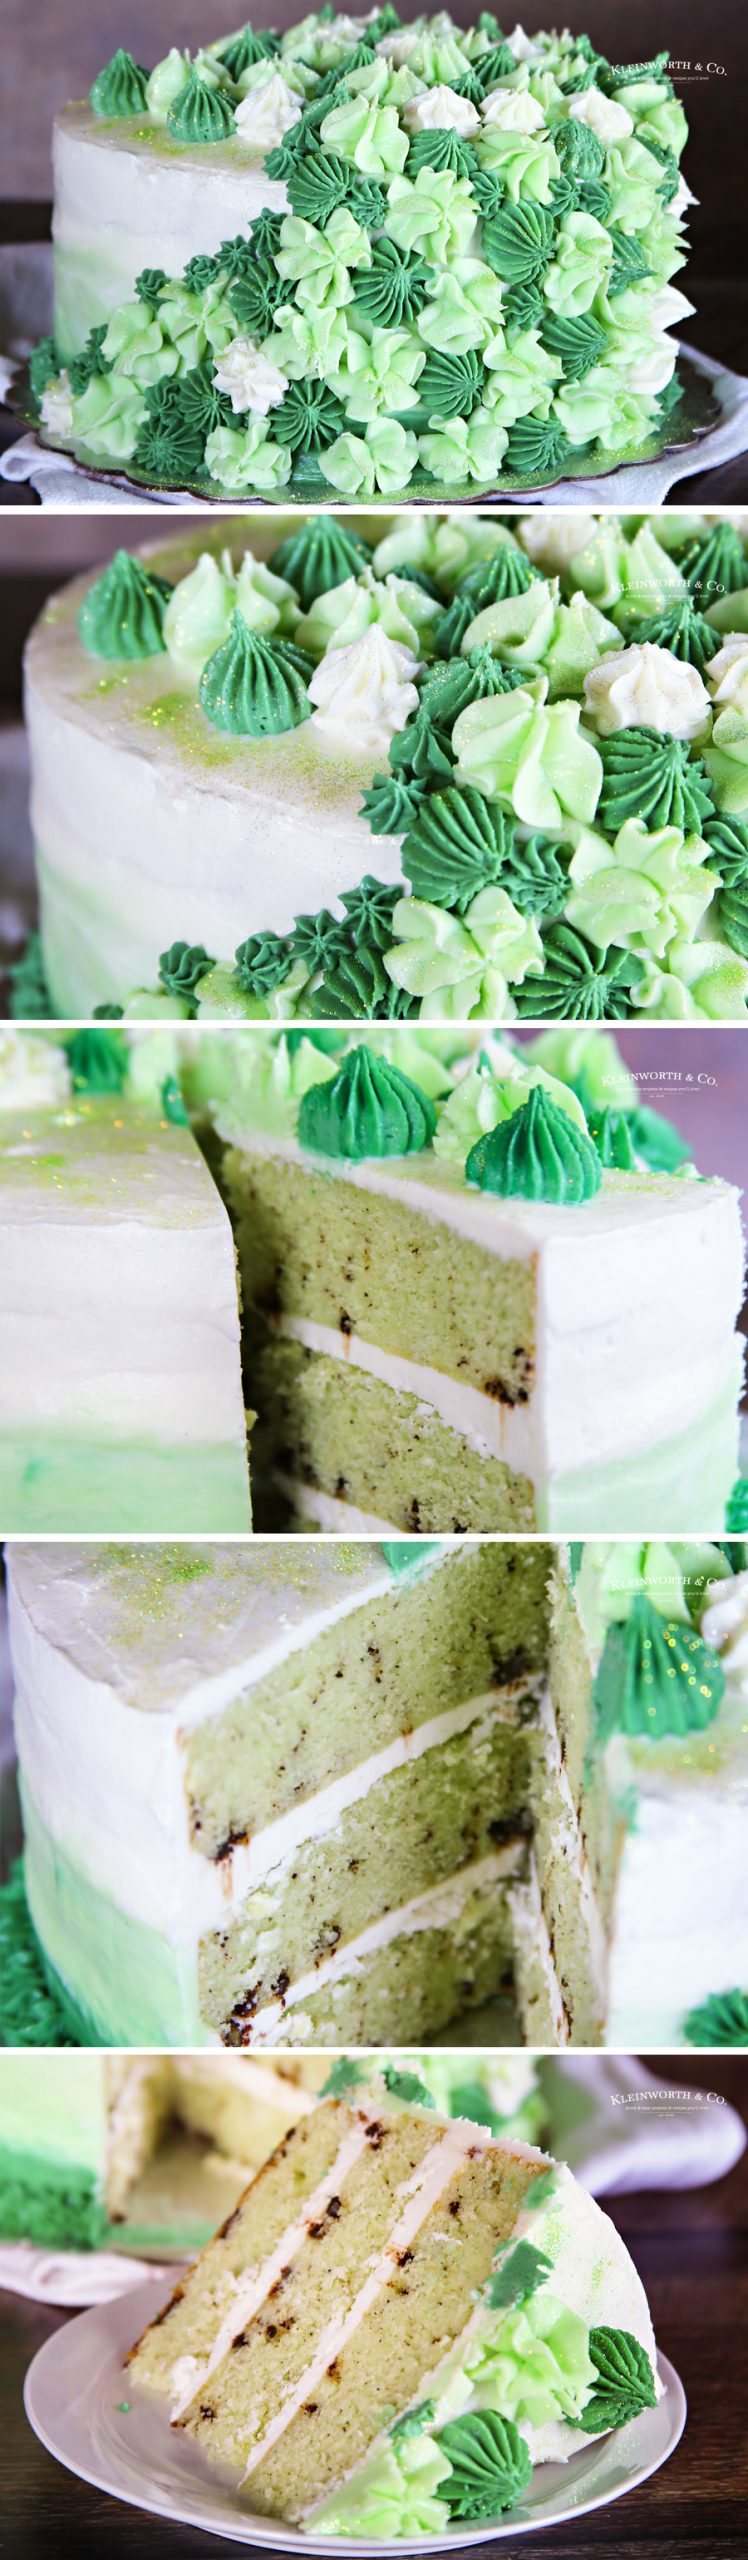 how to make Mint Chocolate Chip Cake